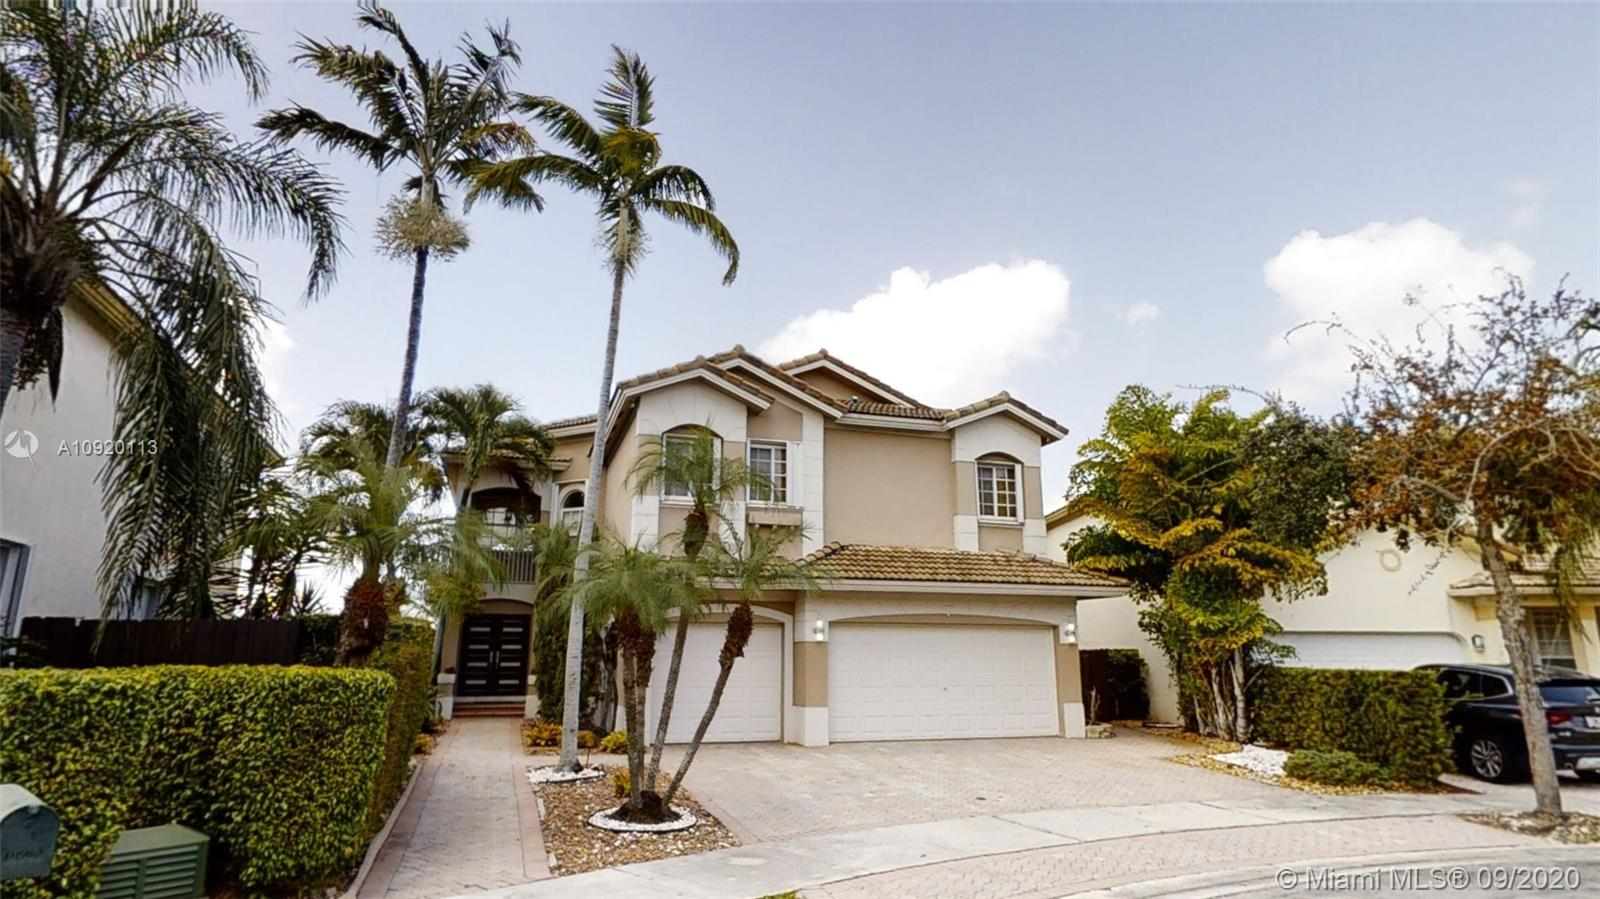 Doral Isles - 10963 NW 72nd Ter #10963, Doral, FL 33178